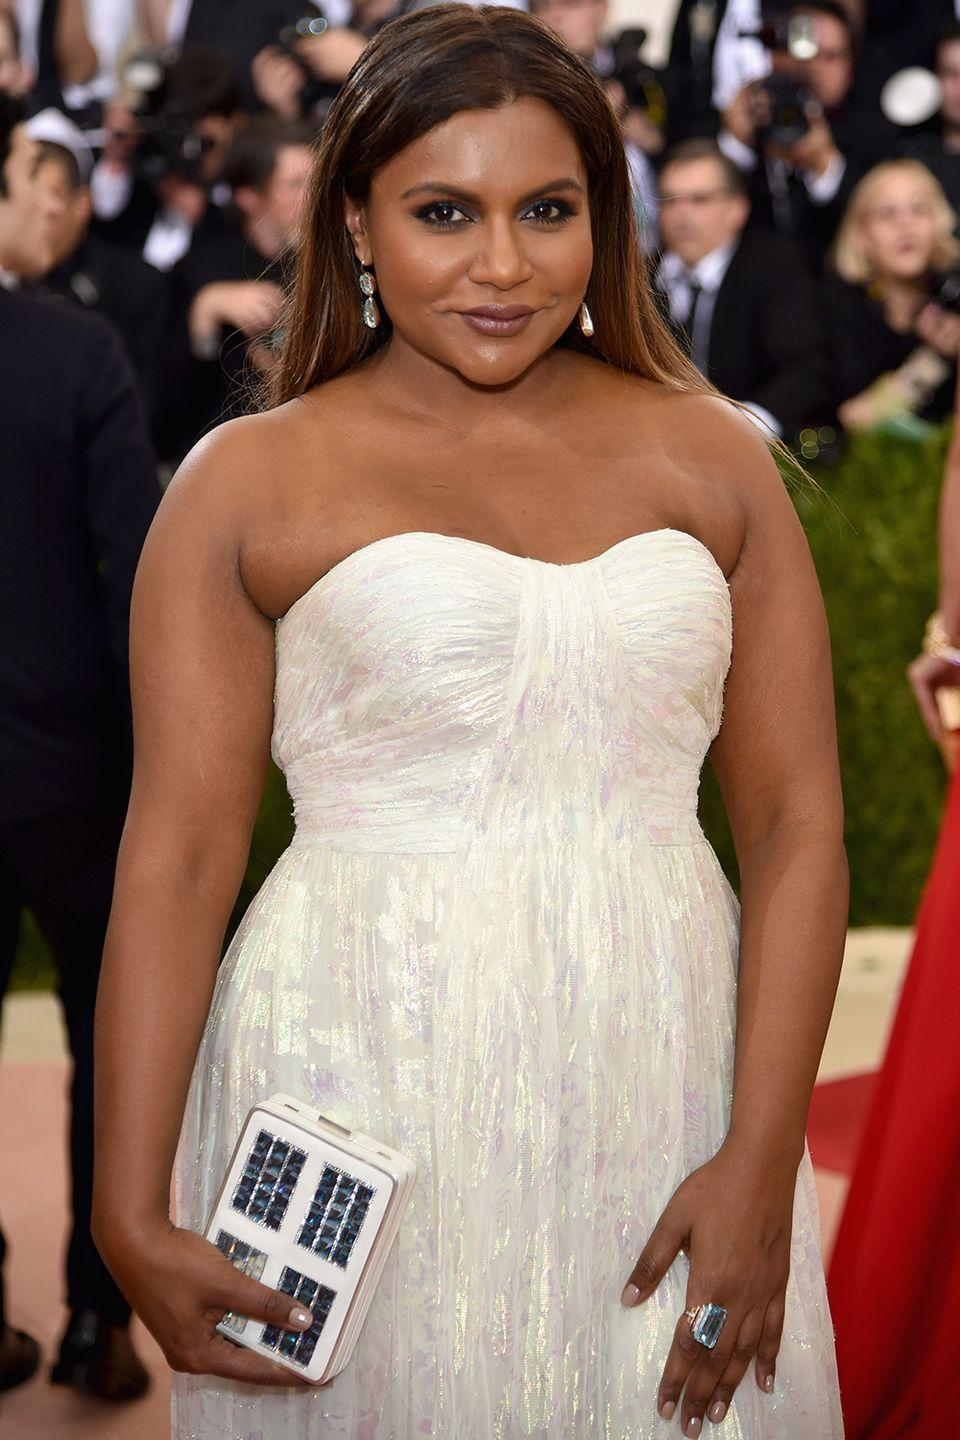 """<p><strong>Born</strong>: Vera Mindy Chokalingam</p><p>Mindy Kaling wasn't born a Mindy. The actress's parents are originally from India and wanted to give their daughter a Hindu name, but Mindy always preferred her middle name. """"Vera isn't just an old Russian lady's name; it's an incarnation of a Hindu goddess,"""" the actress told <em><a href=""""http://www.improper.com/arts-culture/passion-projects/"""" rel=""""nofollow noopener"""" target=""""_blank"""" data-ylk=""""slk:Improper Bostonian"""" class=""""link rapid-noclick-resp"""">Improper Bostonian</a></em> in 2006. """"But they never called me it."""" Then, when the actress was trying to make her way as an actress, she also opted to shorten her last name from Chokalingam to Kaling.</p>"""